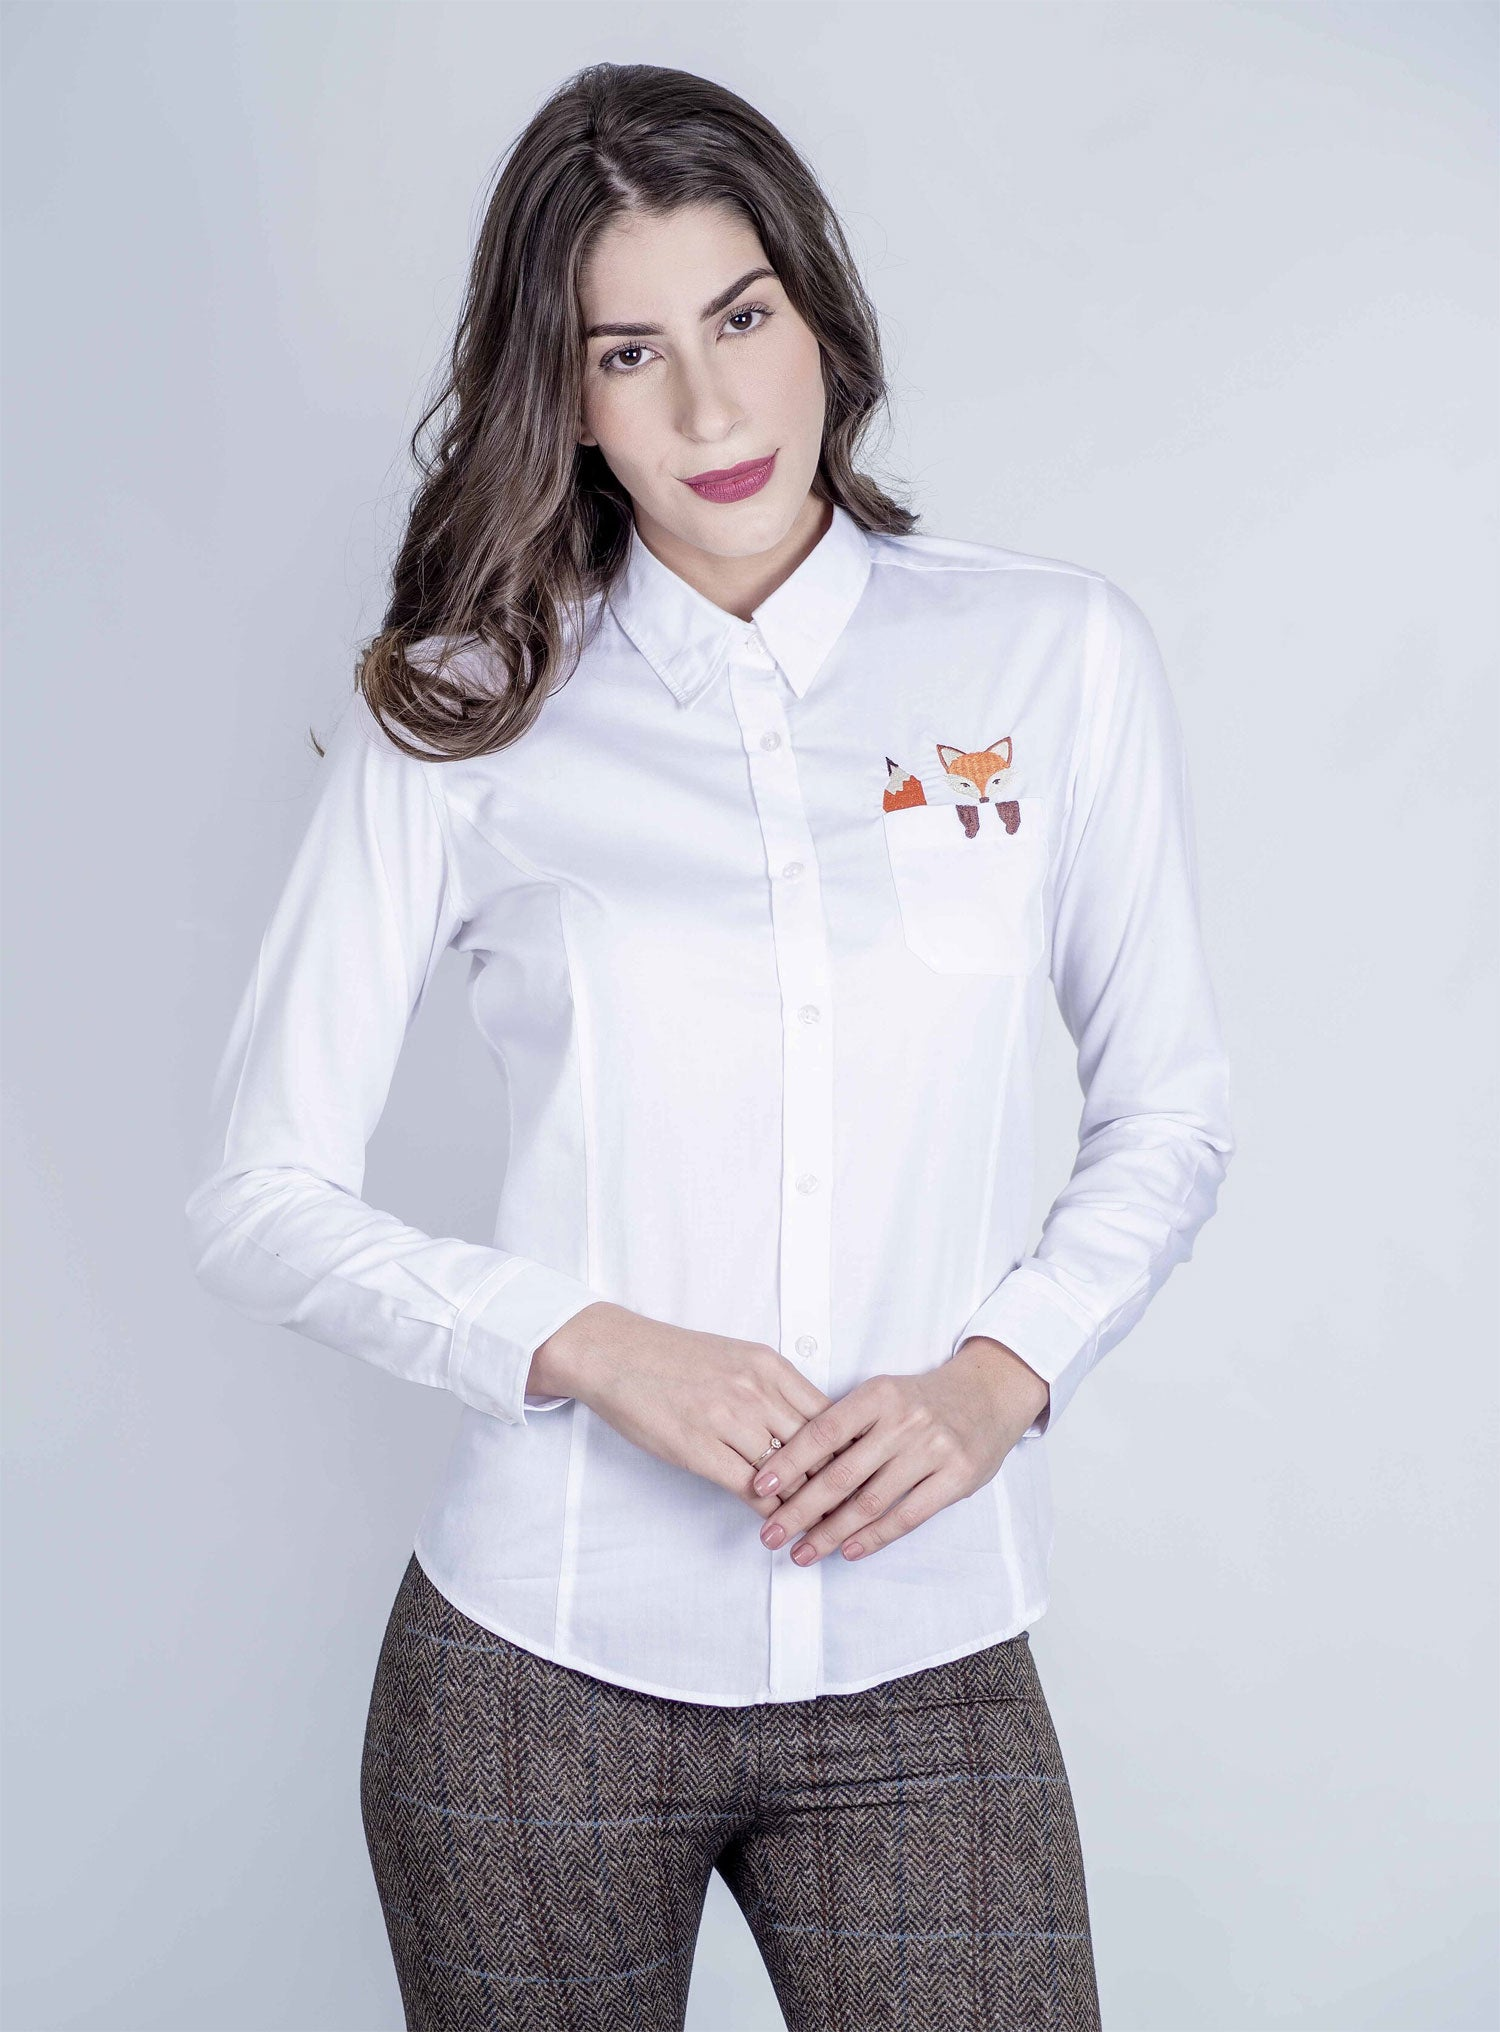 Hartwell Cheeky Fox Shirt for Ladies